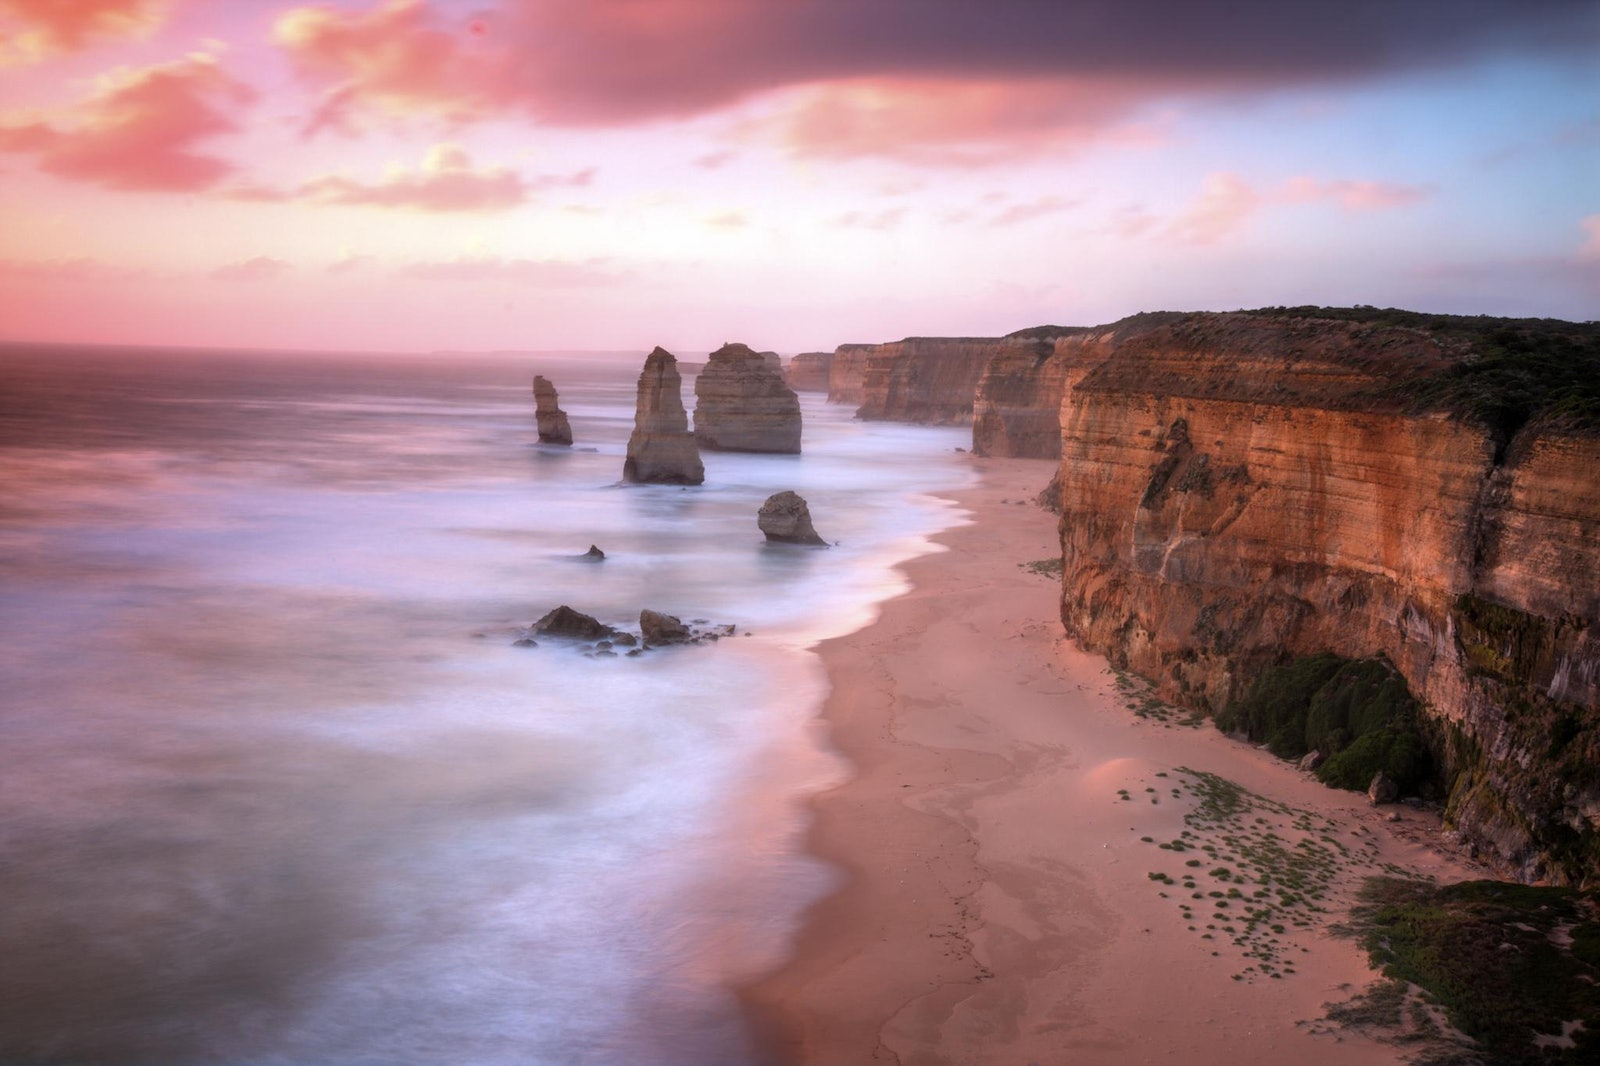 The Twelve Apostles at sunset #1 - This photo was taken during a beautiful sunset of the twelve apostles.